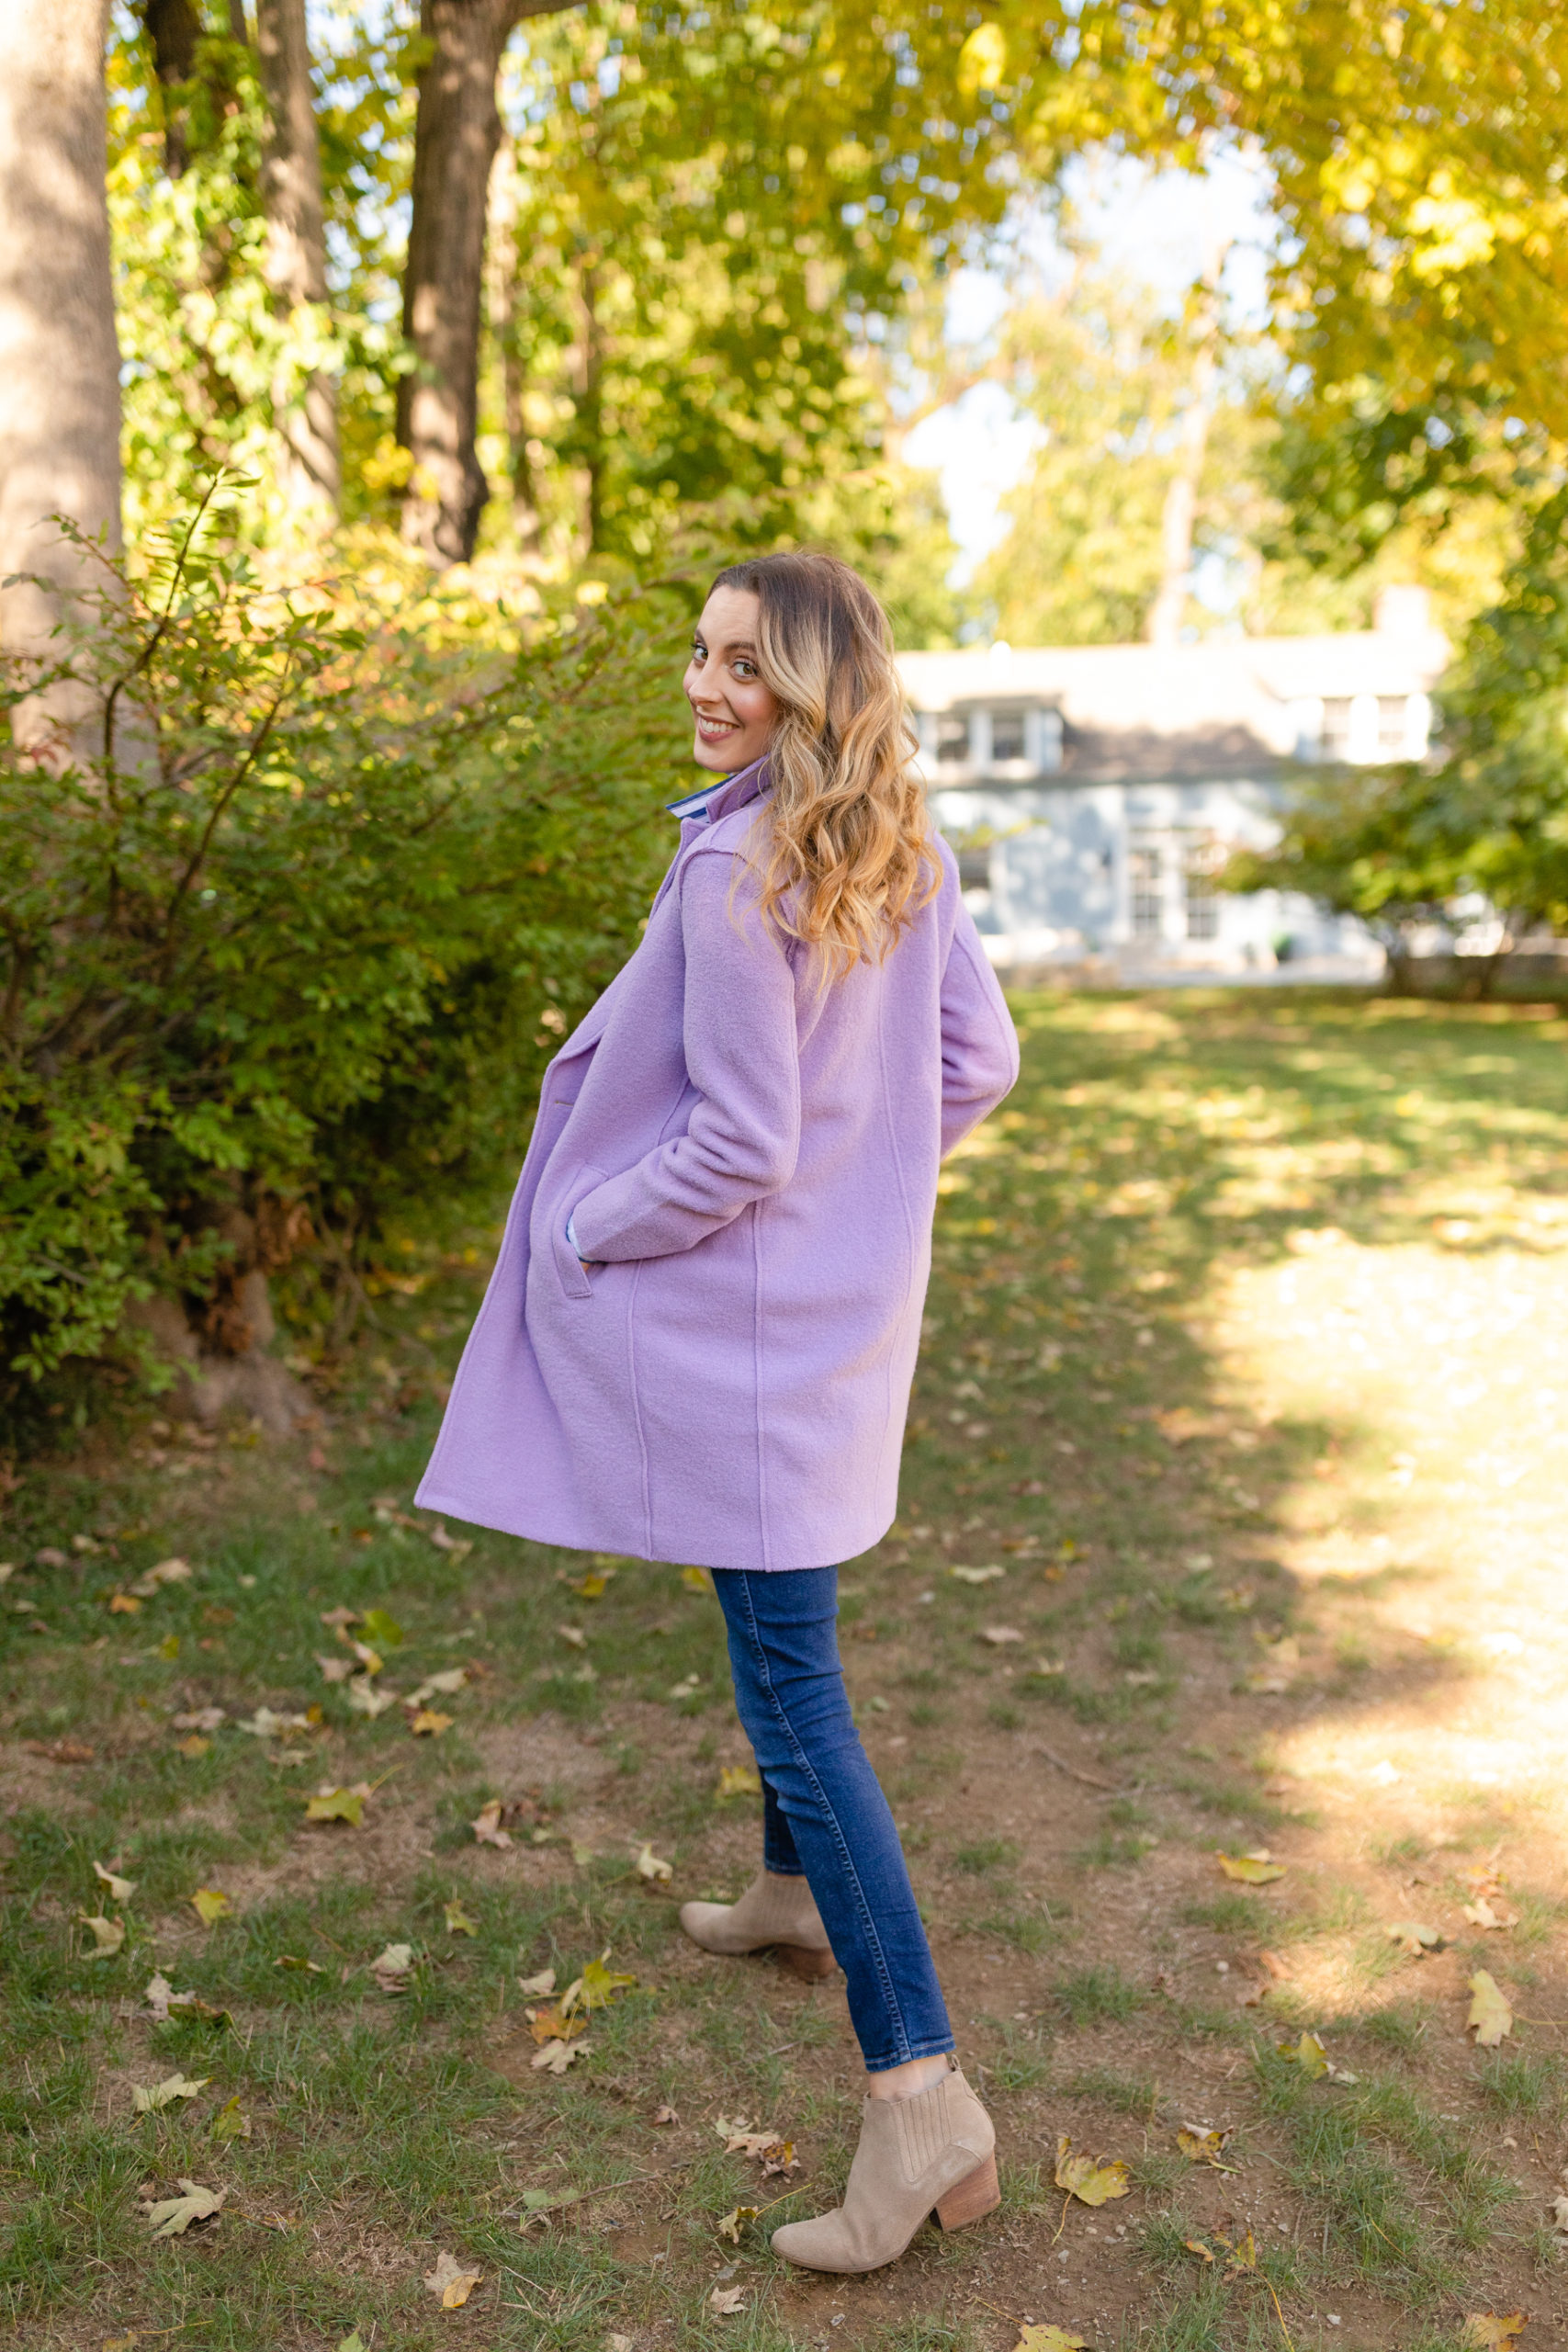 Eva Amurri shares her favorite fall jackets for 2020